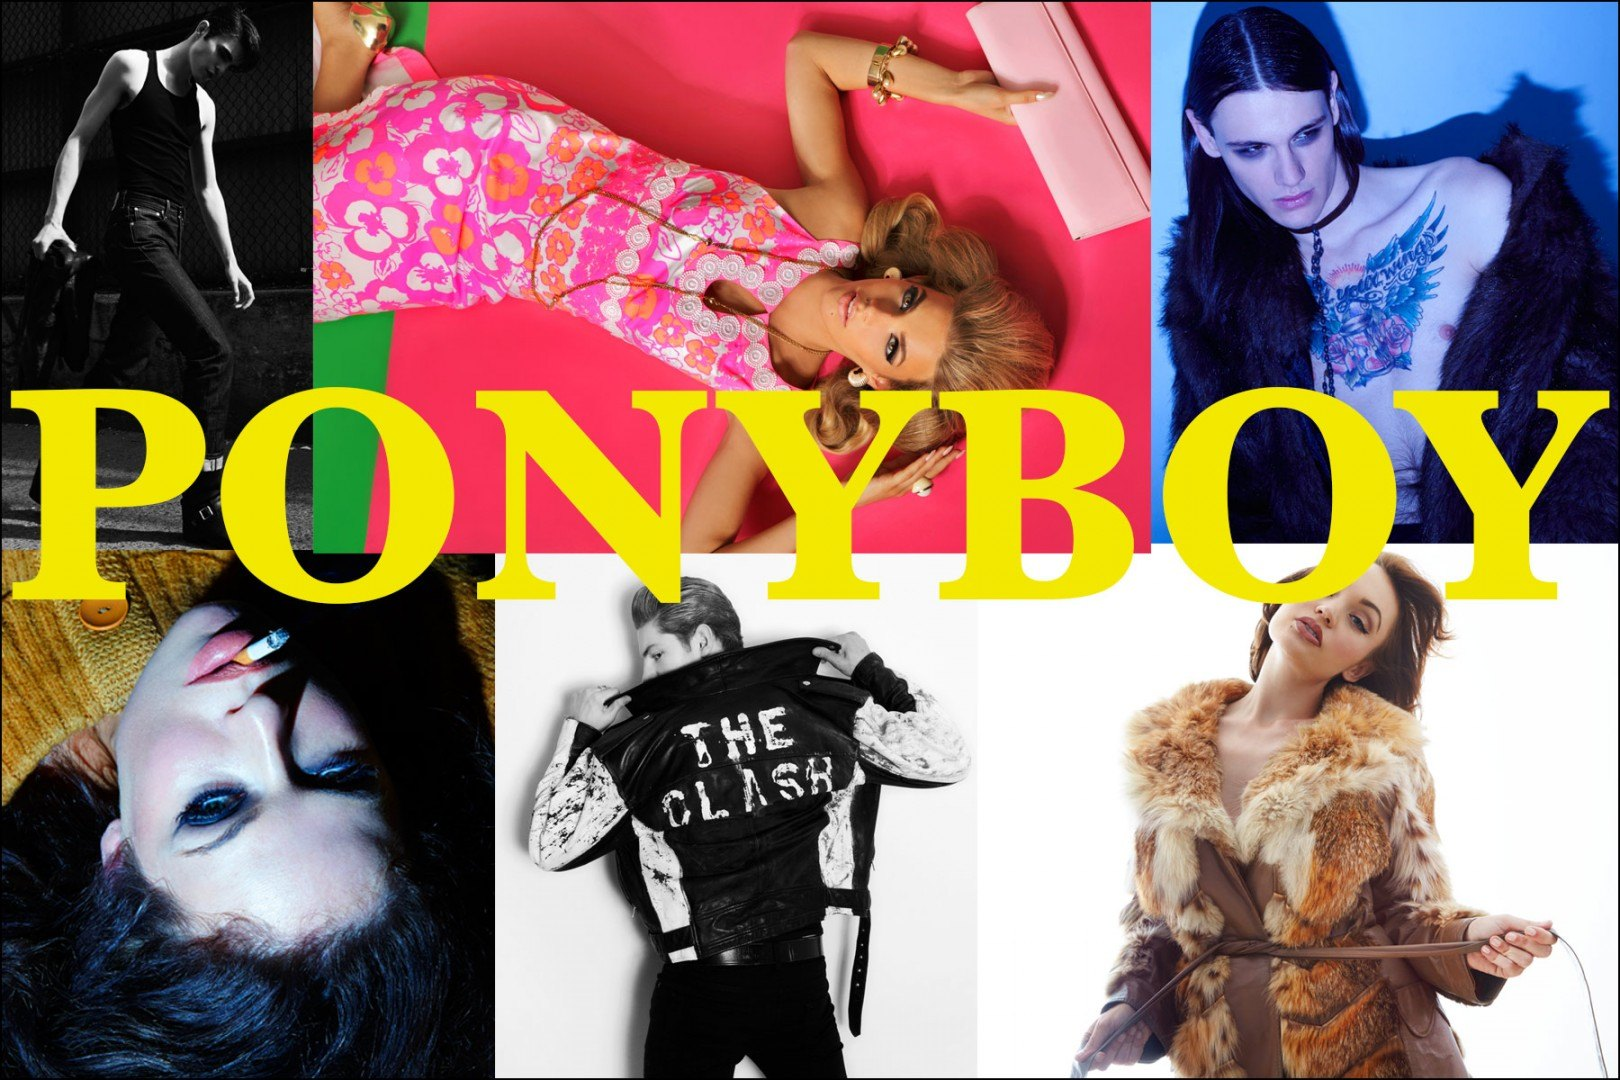 Ponyboy-ABOUT-Collage-2F